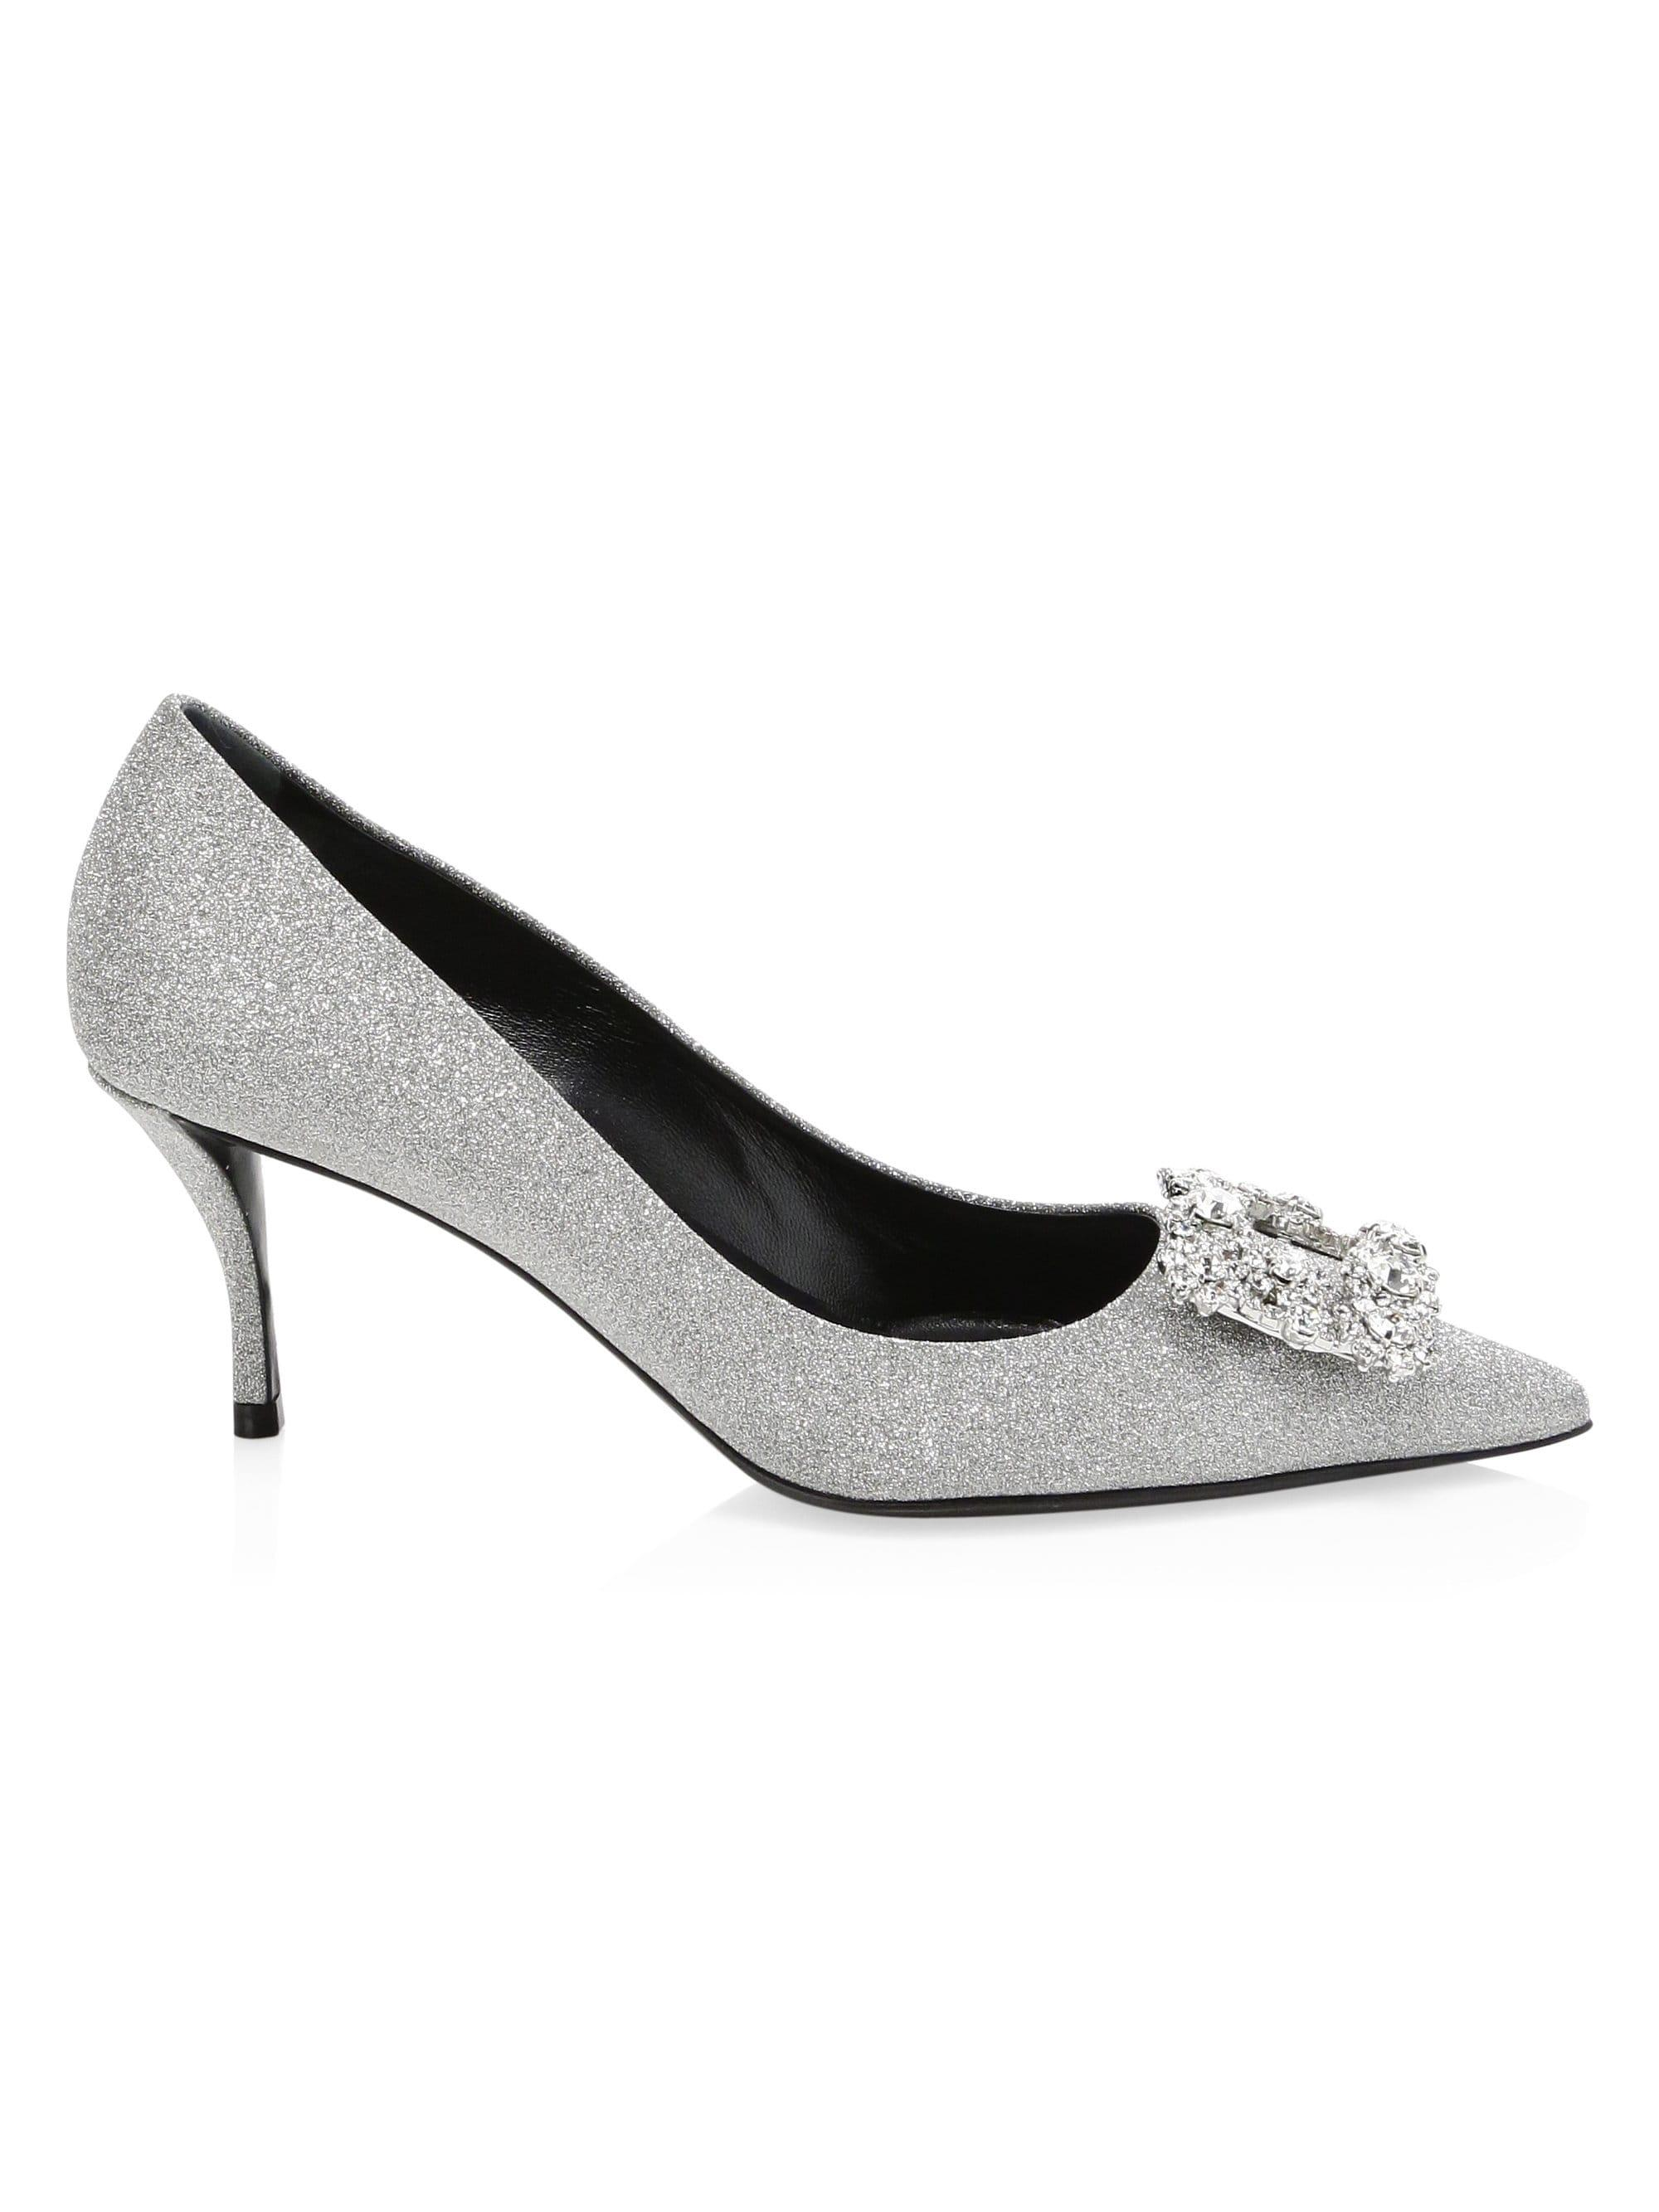 ea4af7bb6d8 Roger Vivier Glitter Fabric Flower-crystal Buckle Pumps in Metallic ...